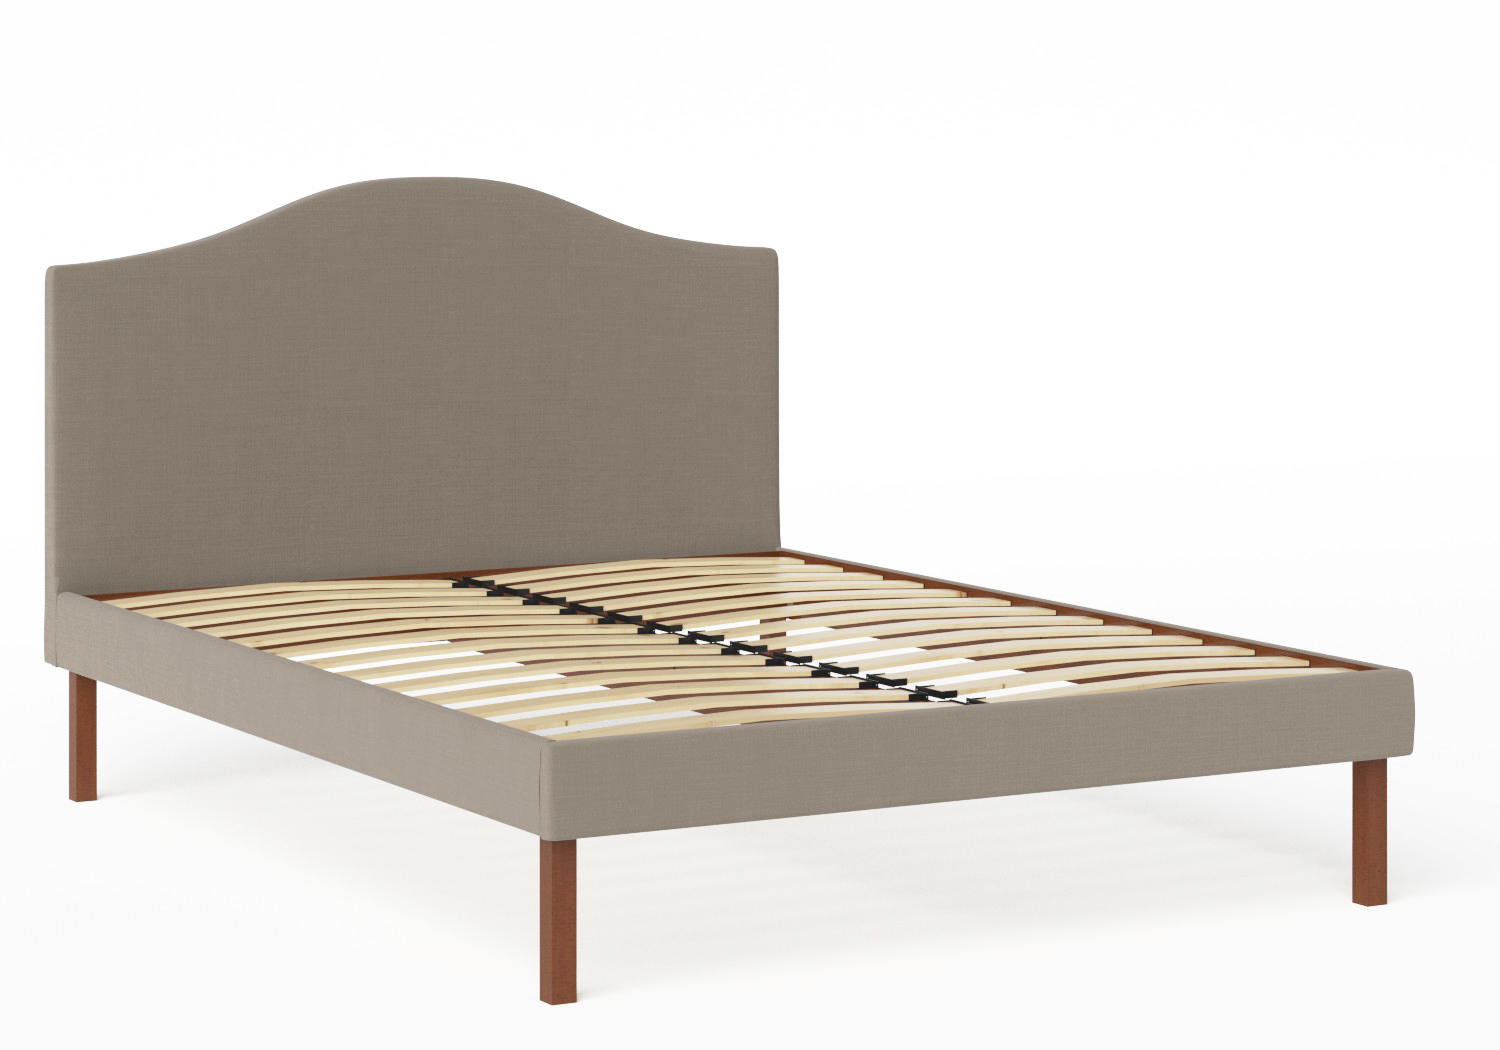 Yoshida Upholstered Bed with Grey fabric shown with slatted frame